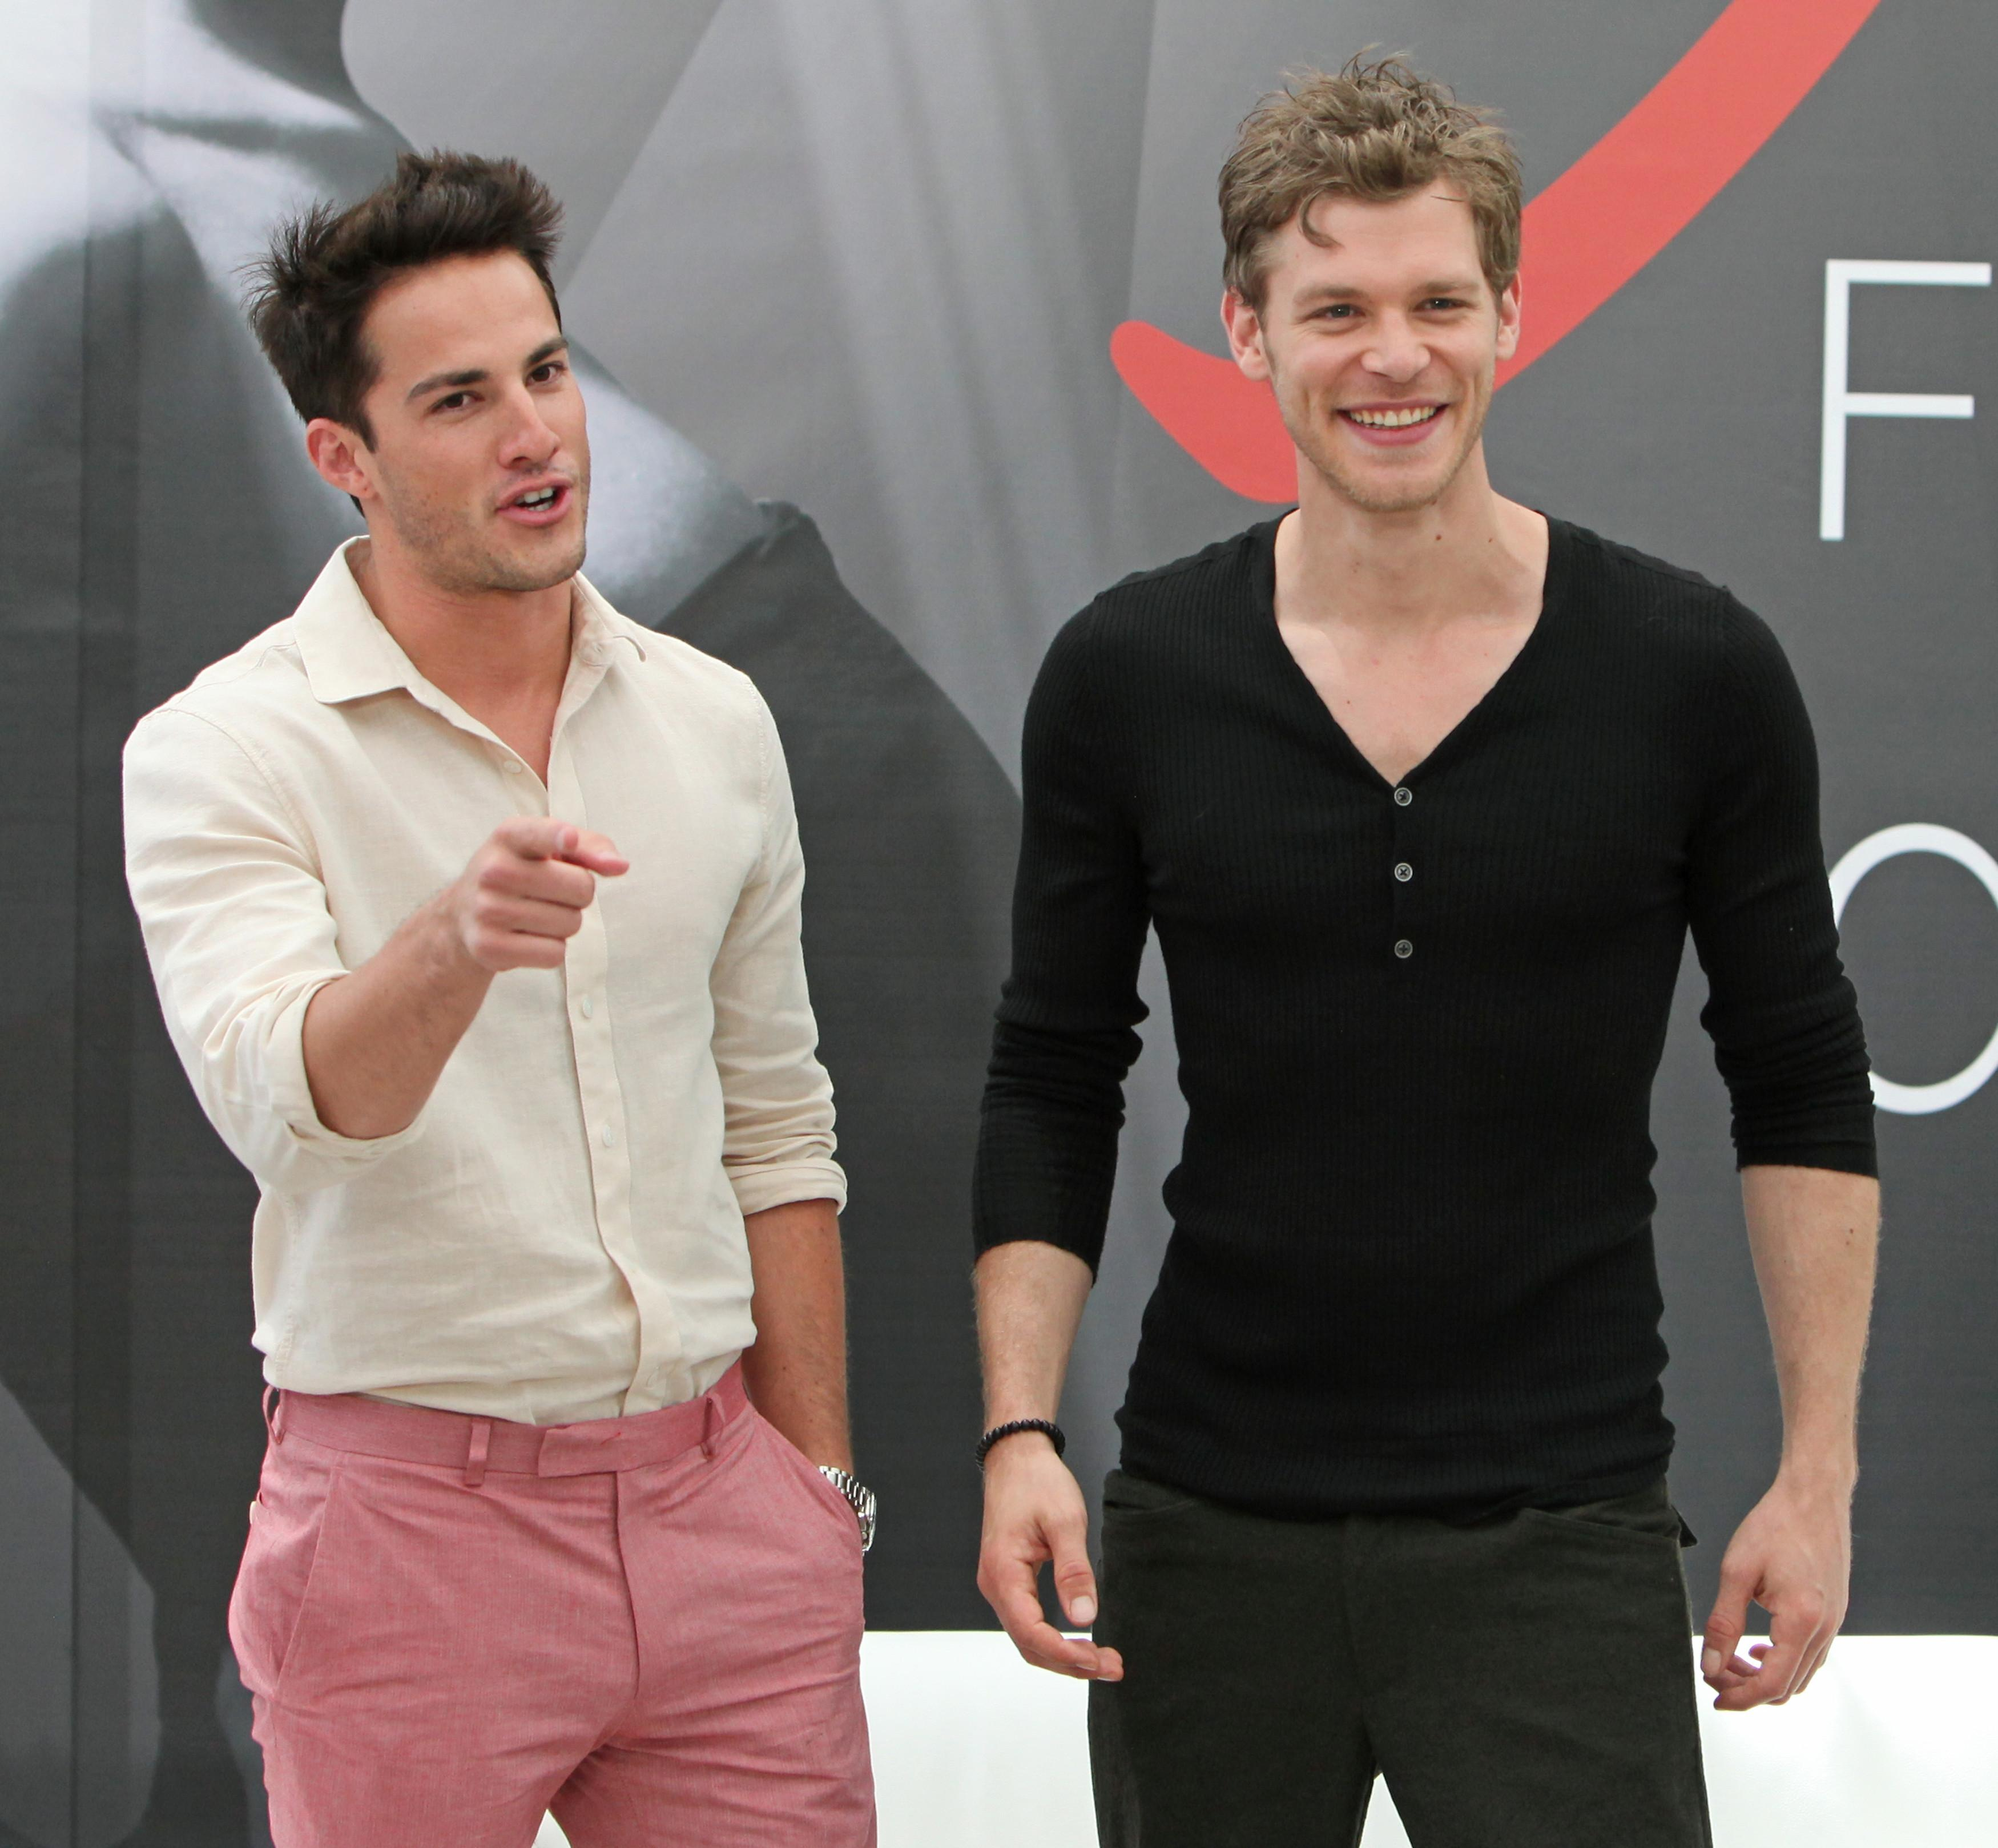 michael trevino dating Michael trevino picture gallery on broadwayworldcom with michael trevino photos from stage, special events, red carpets and more.